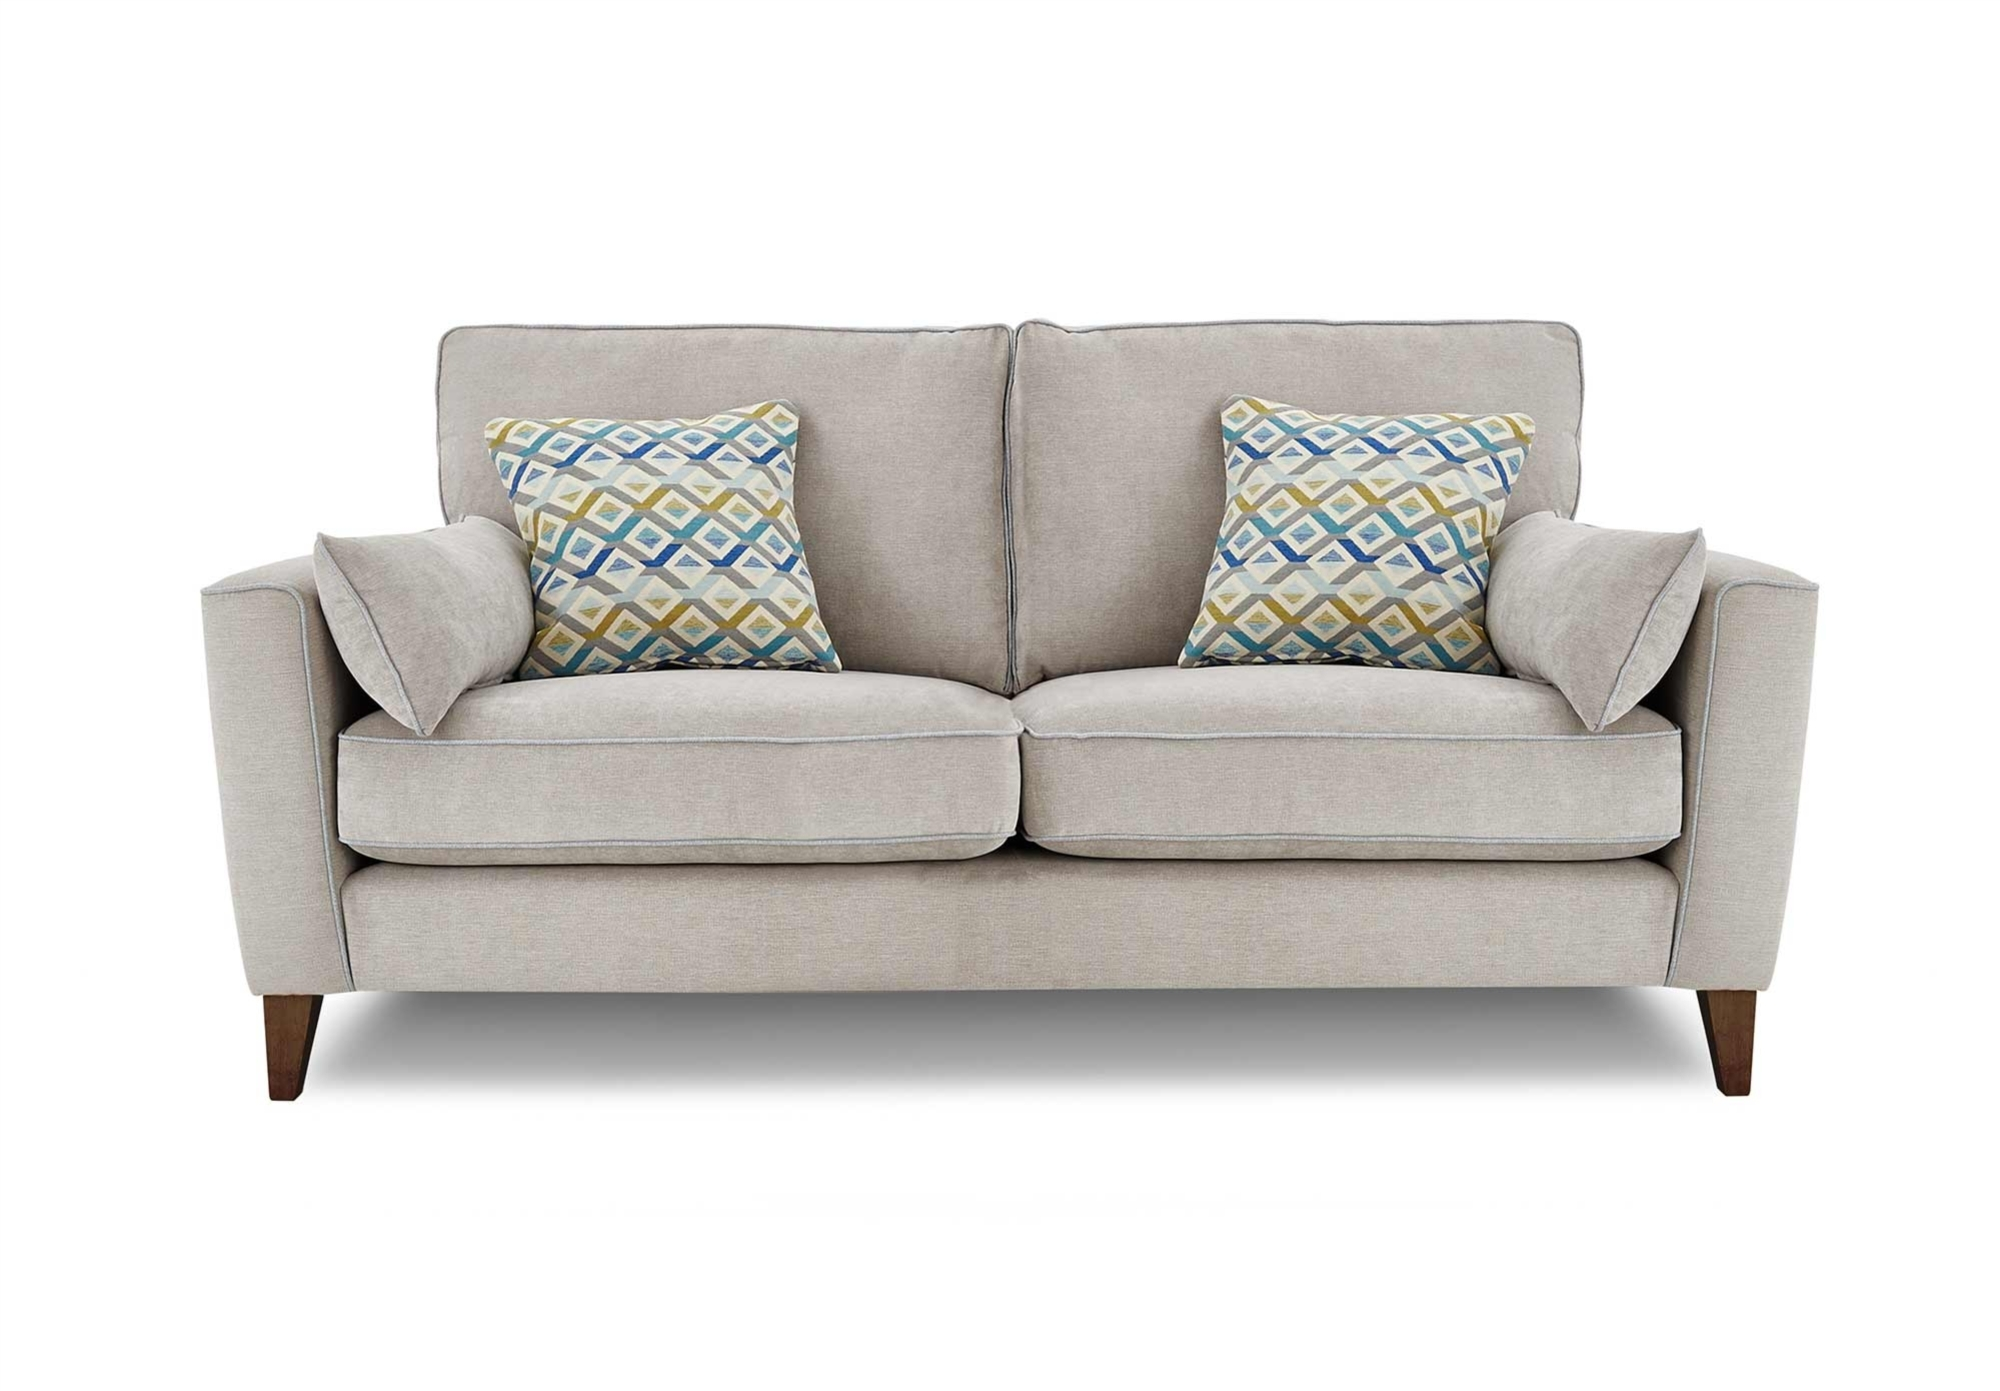 Two Seater Sofa Silfre Inside 2 Seat Sofa On Sale With Regard To In Two Seater Sofas (Image 14 of 15)